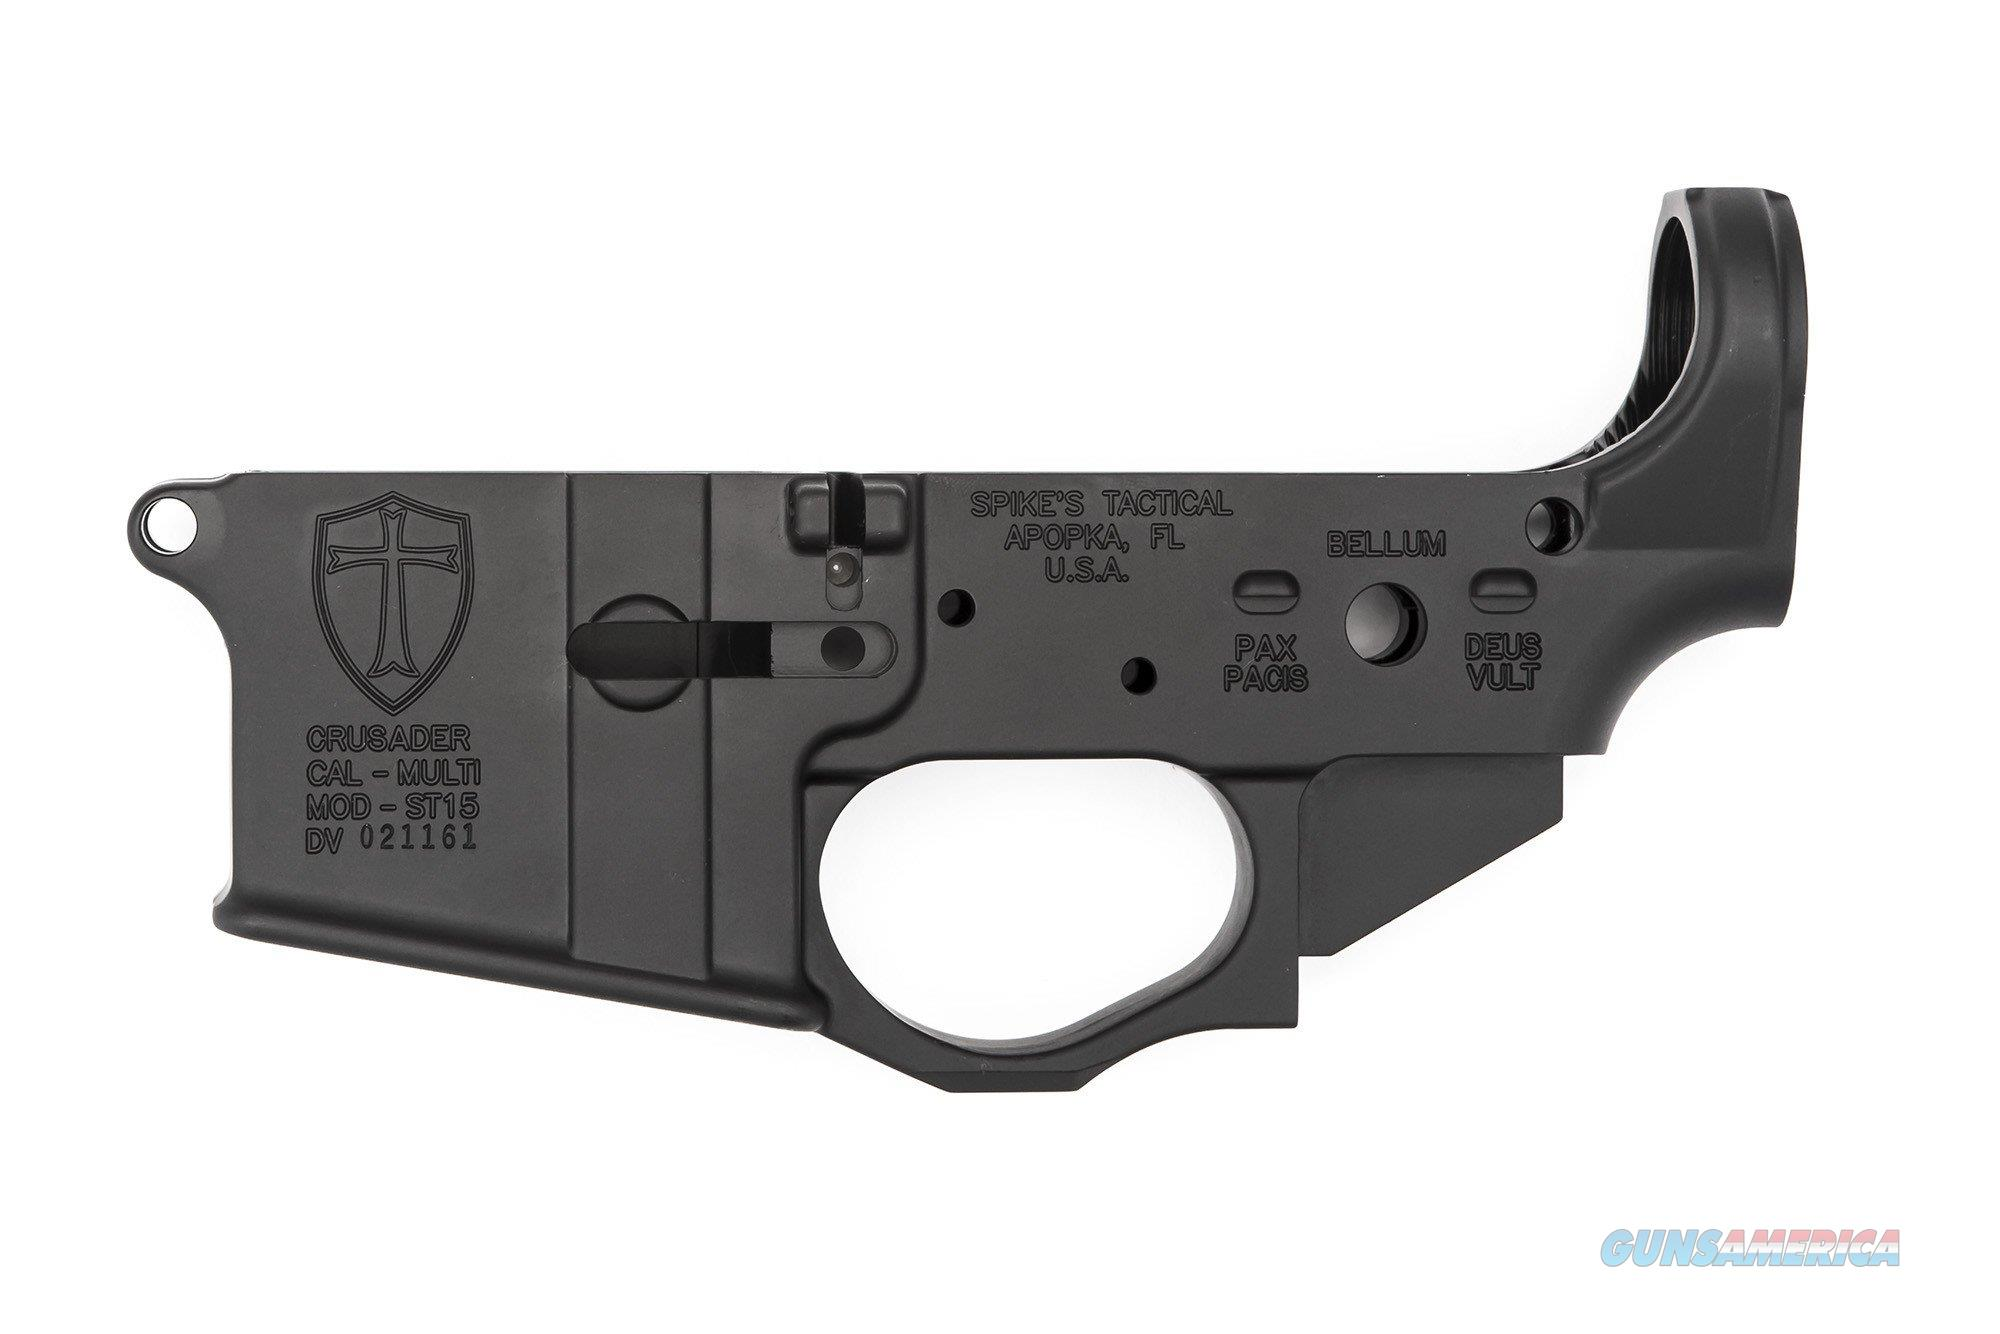 Spike's Tactical Crusader AR-15 Lower Receiver STLS022  Guns > Rifles > AR-15 Rifles - Small Manufacturers > Lower Only